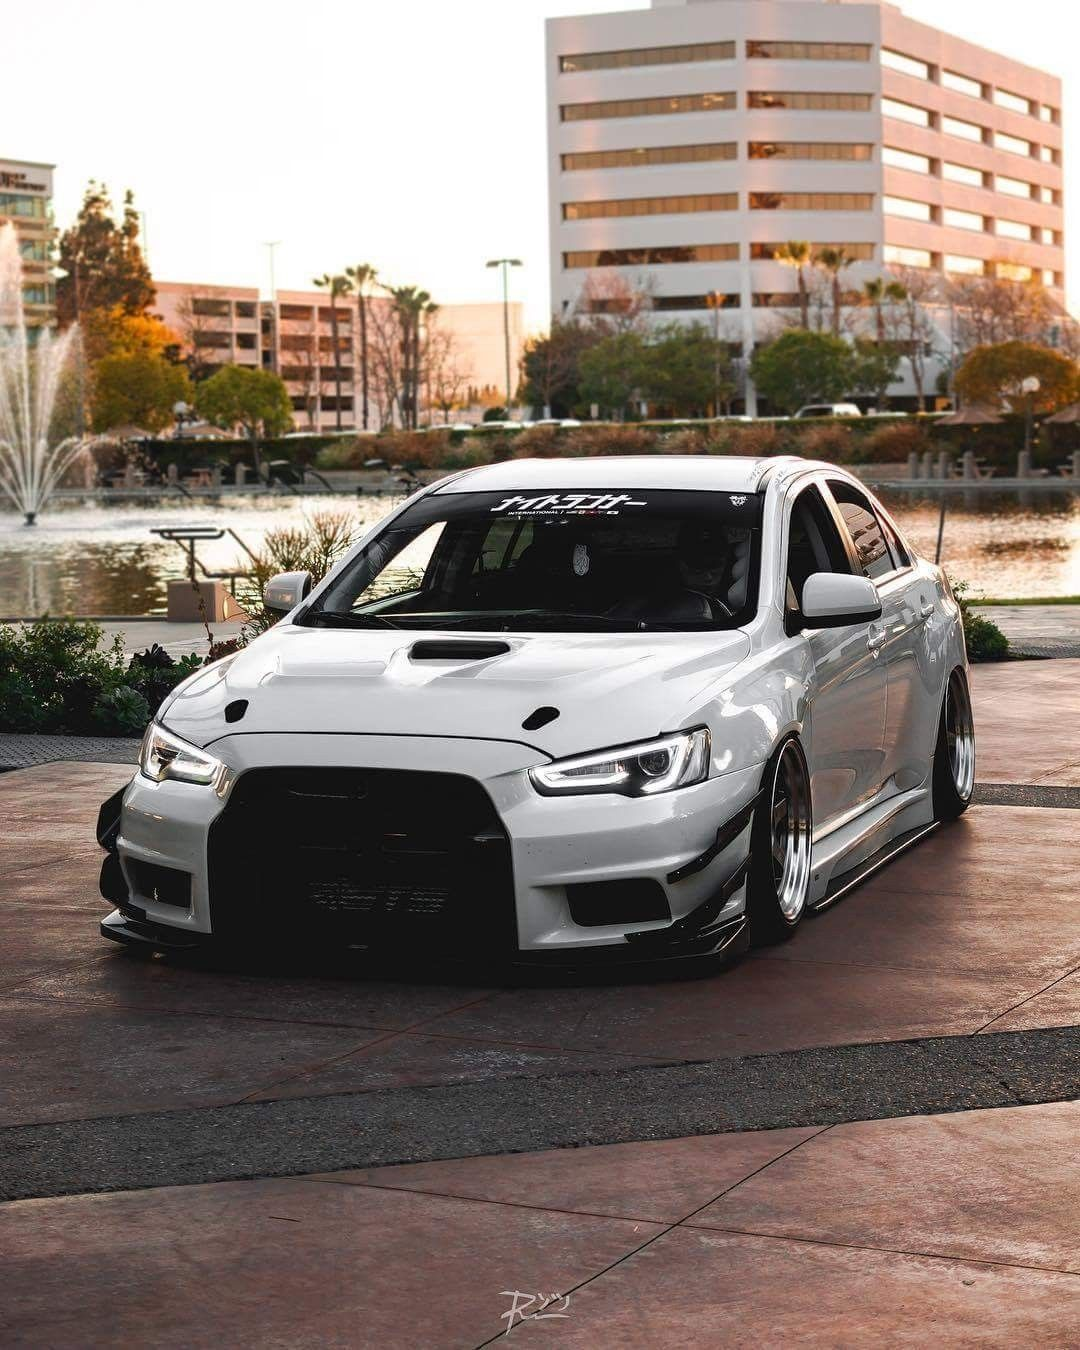 Amazing Mitsubishi Lancer Sport Car Wallpaper Hd Picture: Pin By Nikko 2001 On Mitsubishi Lancer EVO